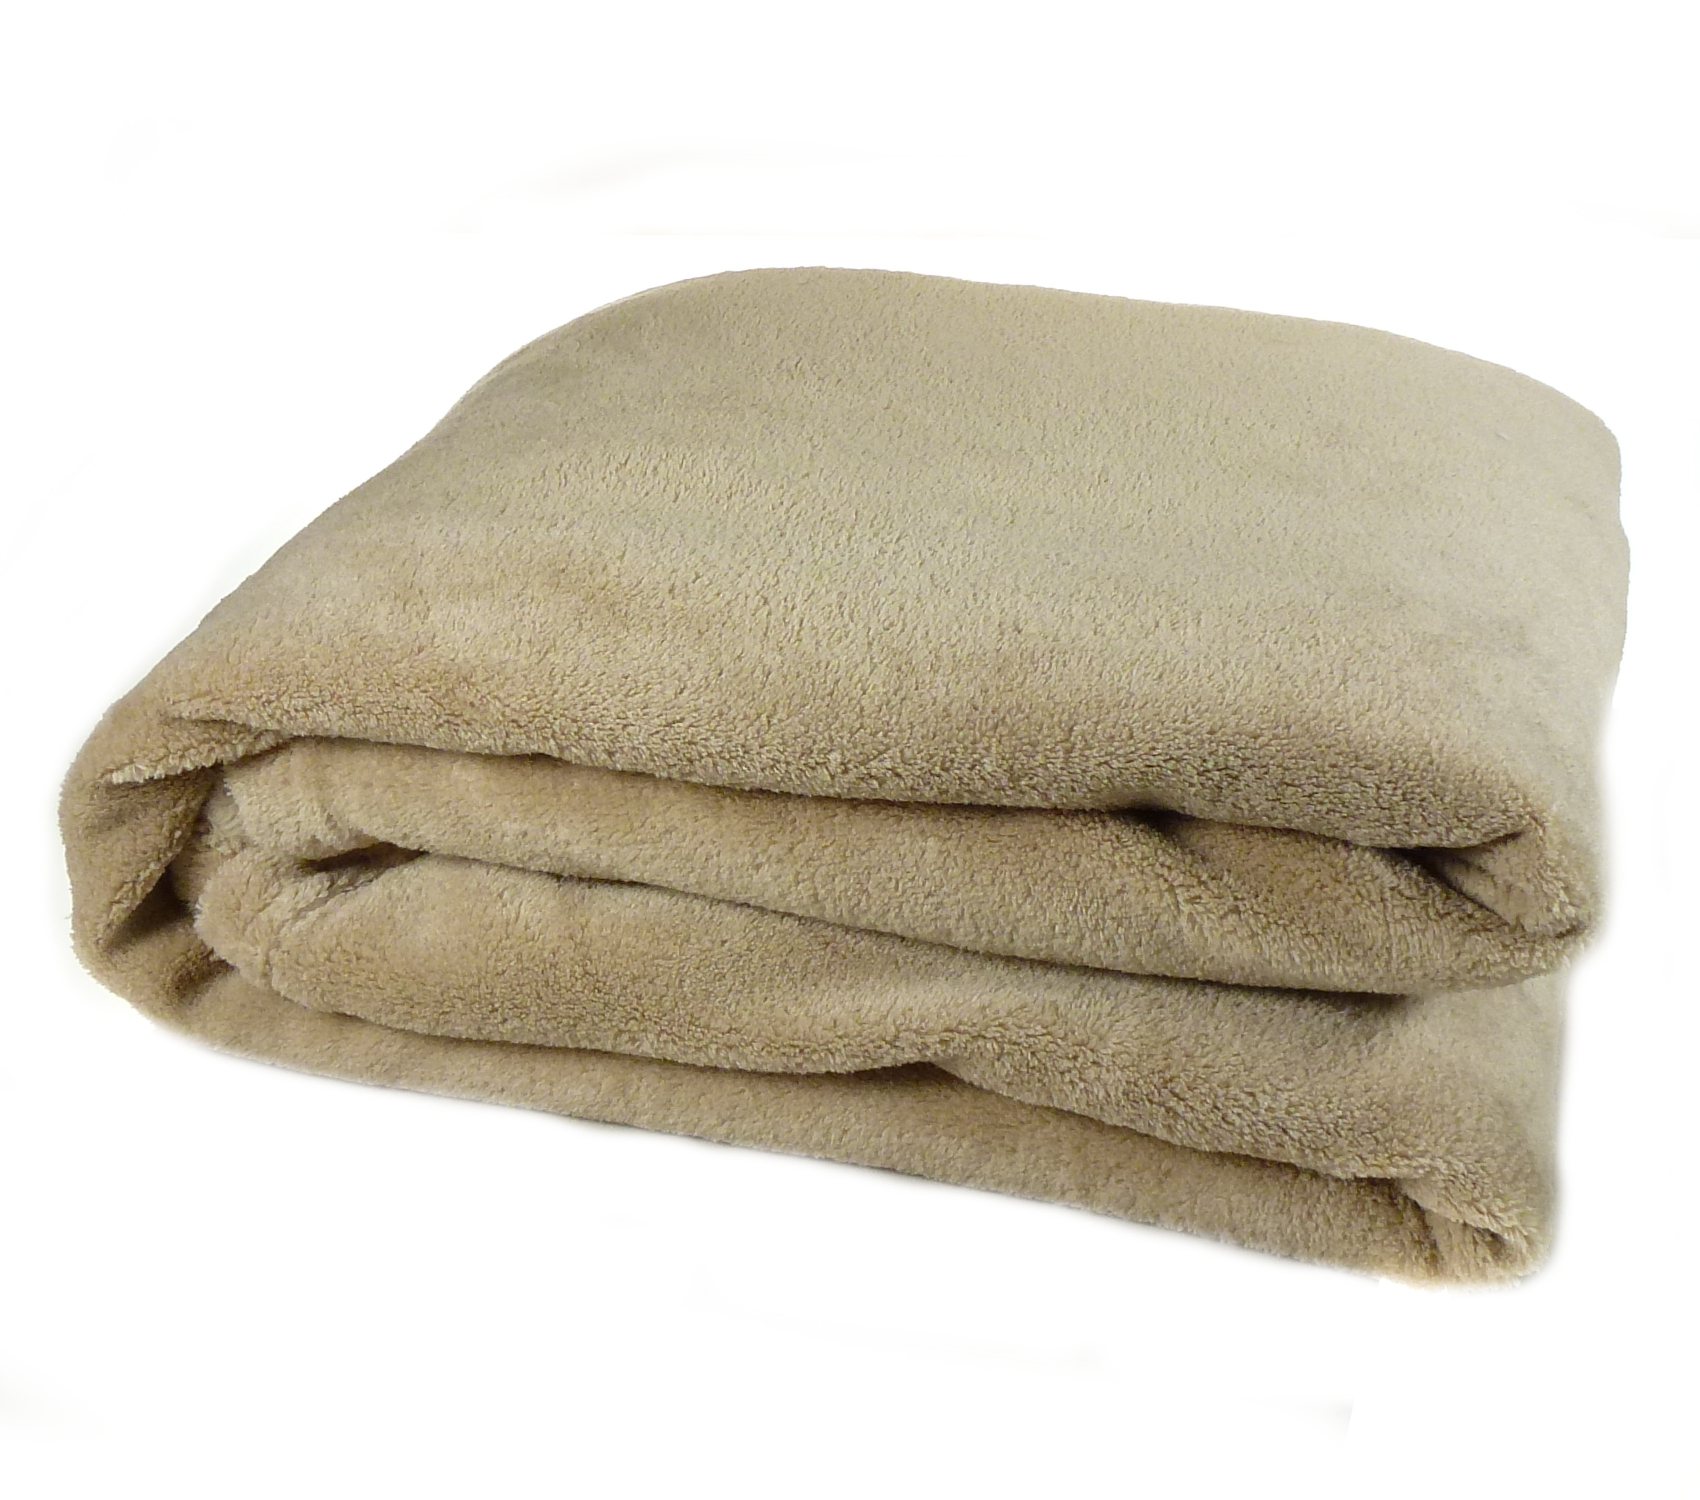 100 polyester sofa throws contemporary leather and loveseat soft coral fleece blanket cosy warm bed luxury fleecy